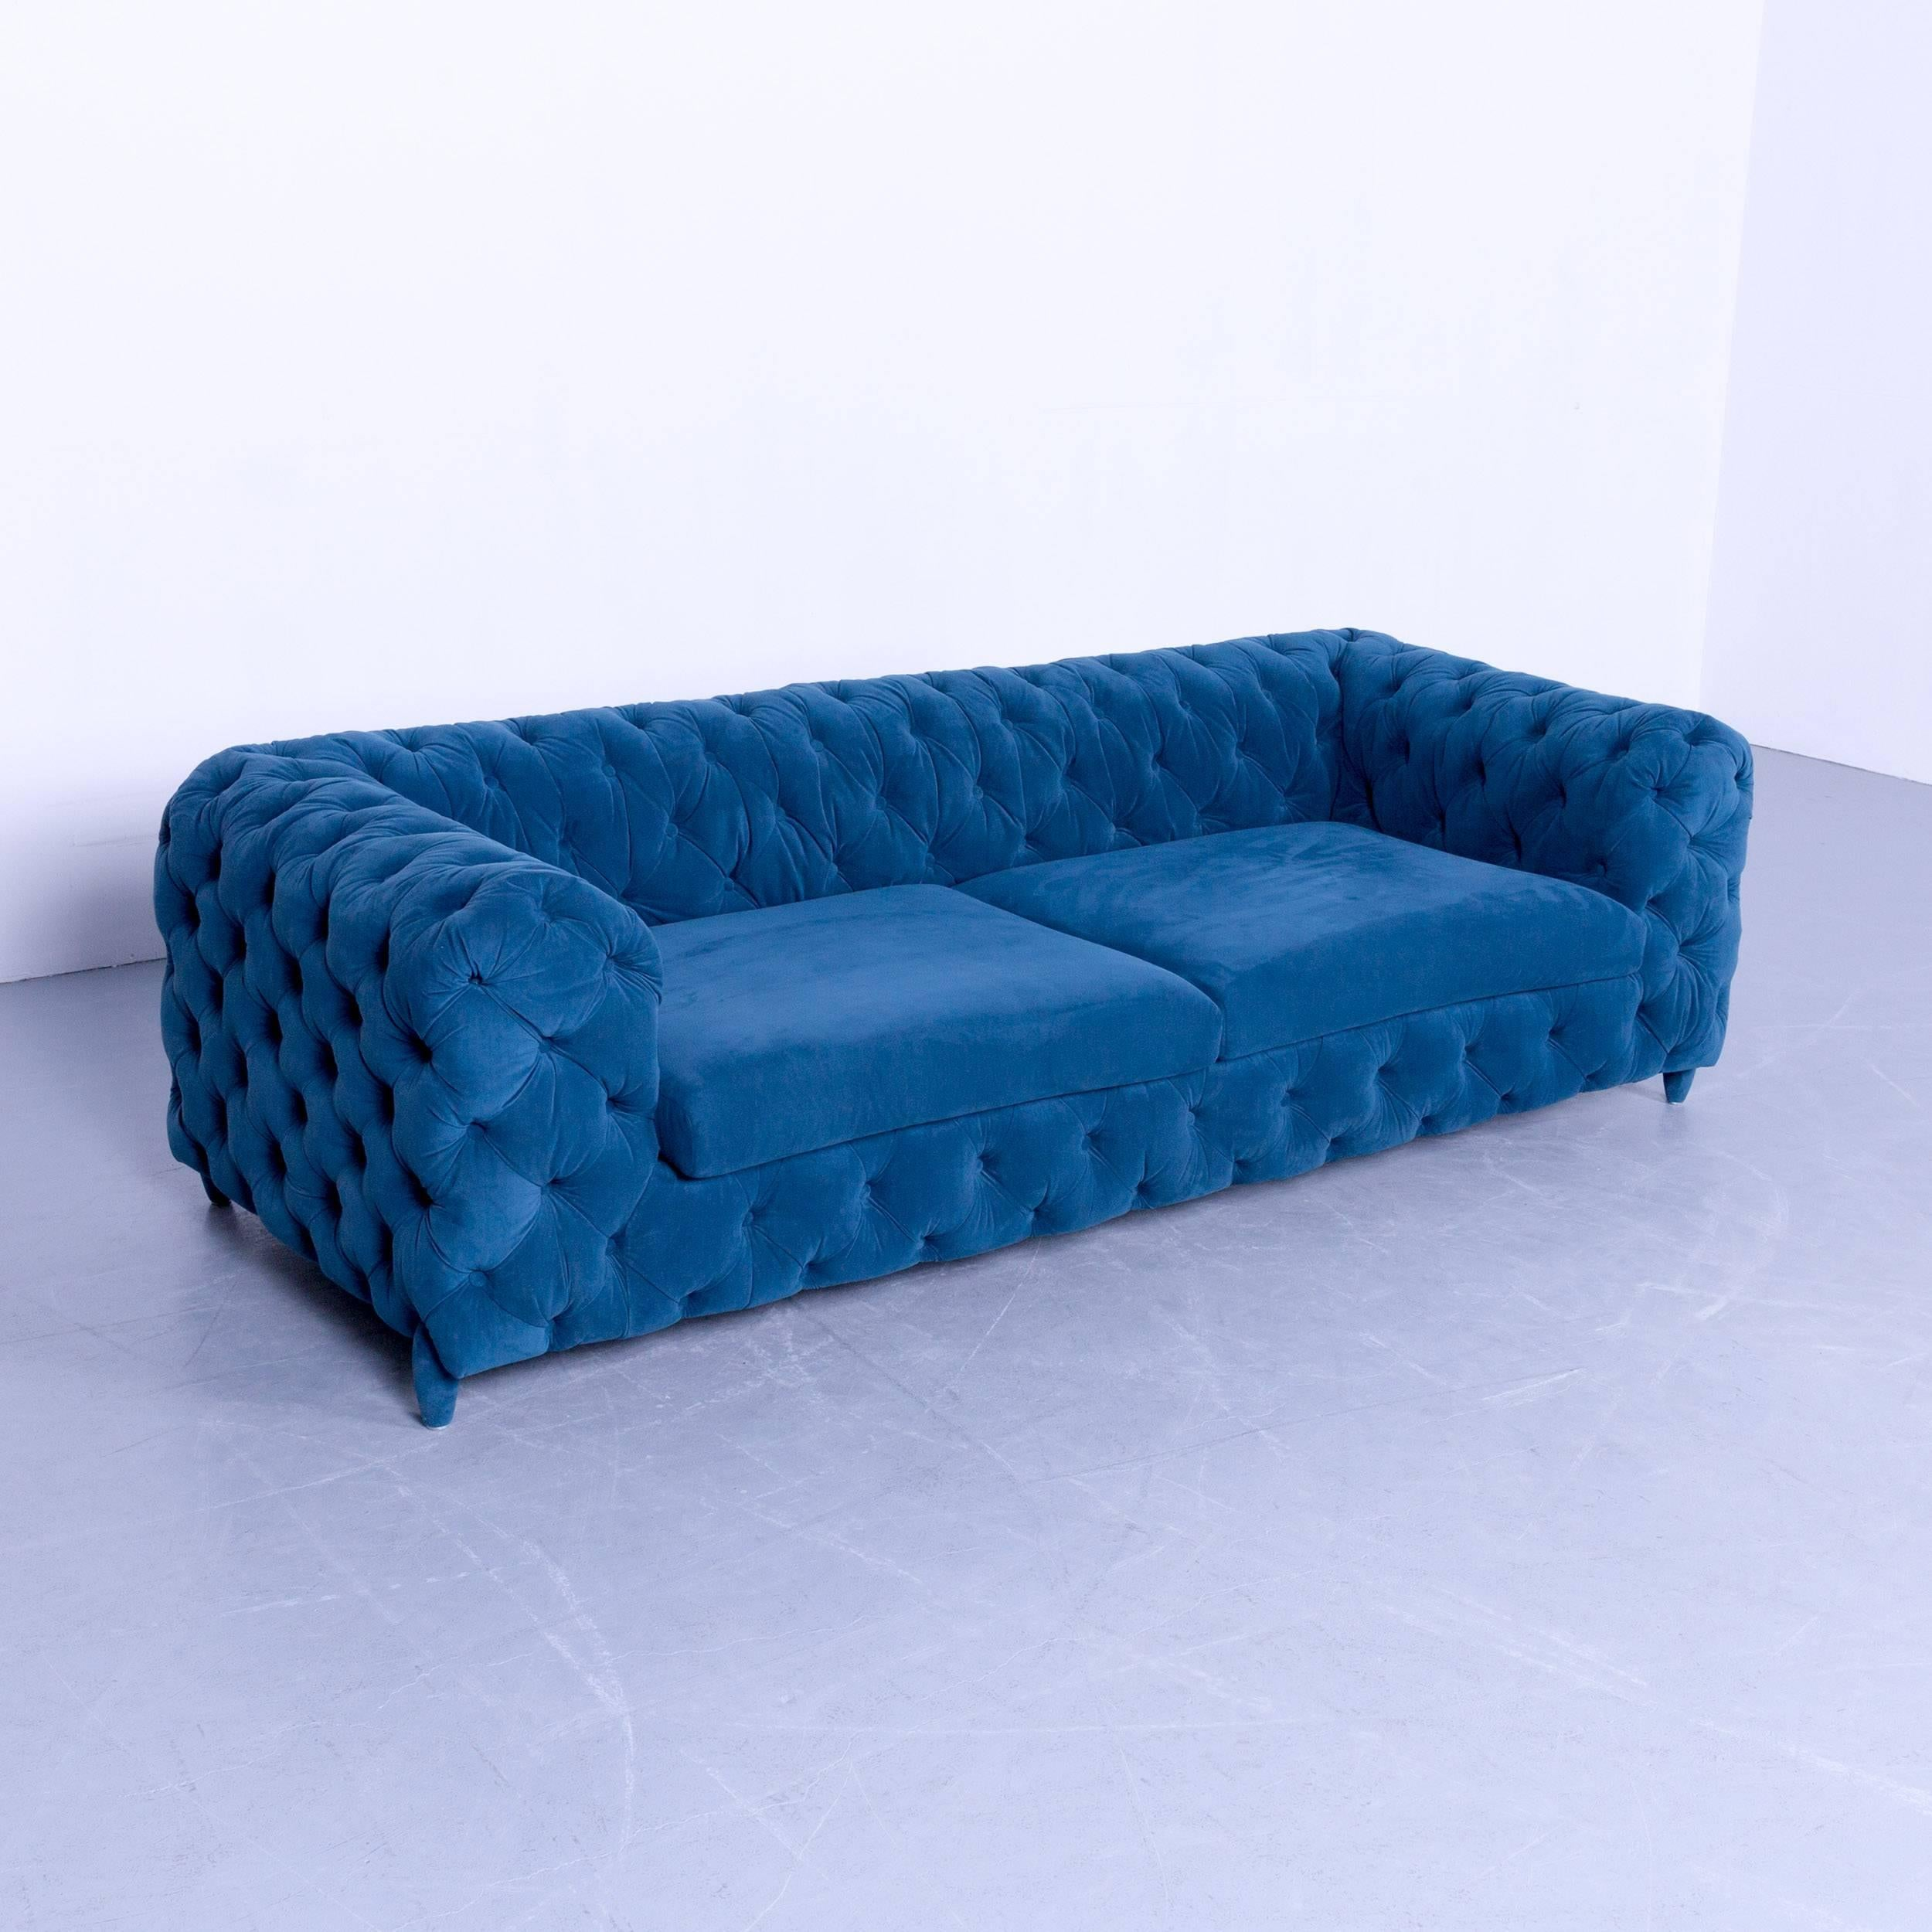 Original Kare Designer Sofa Fabric Blue Two Seat Couch Germany